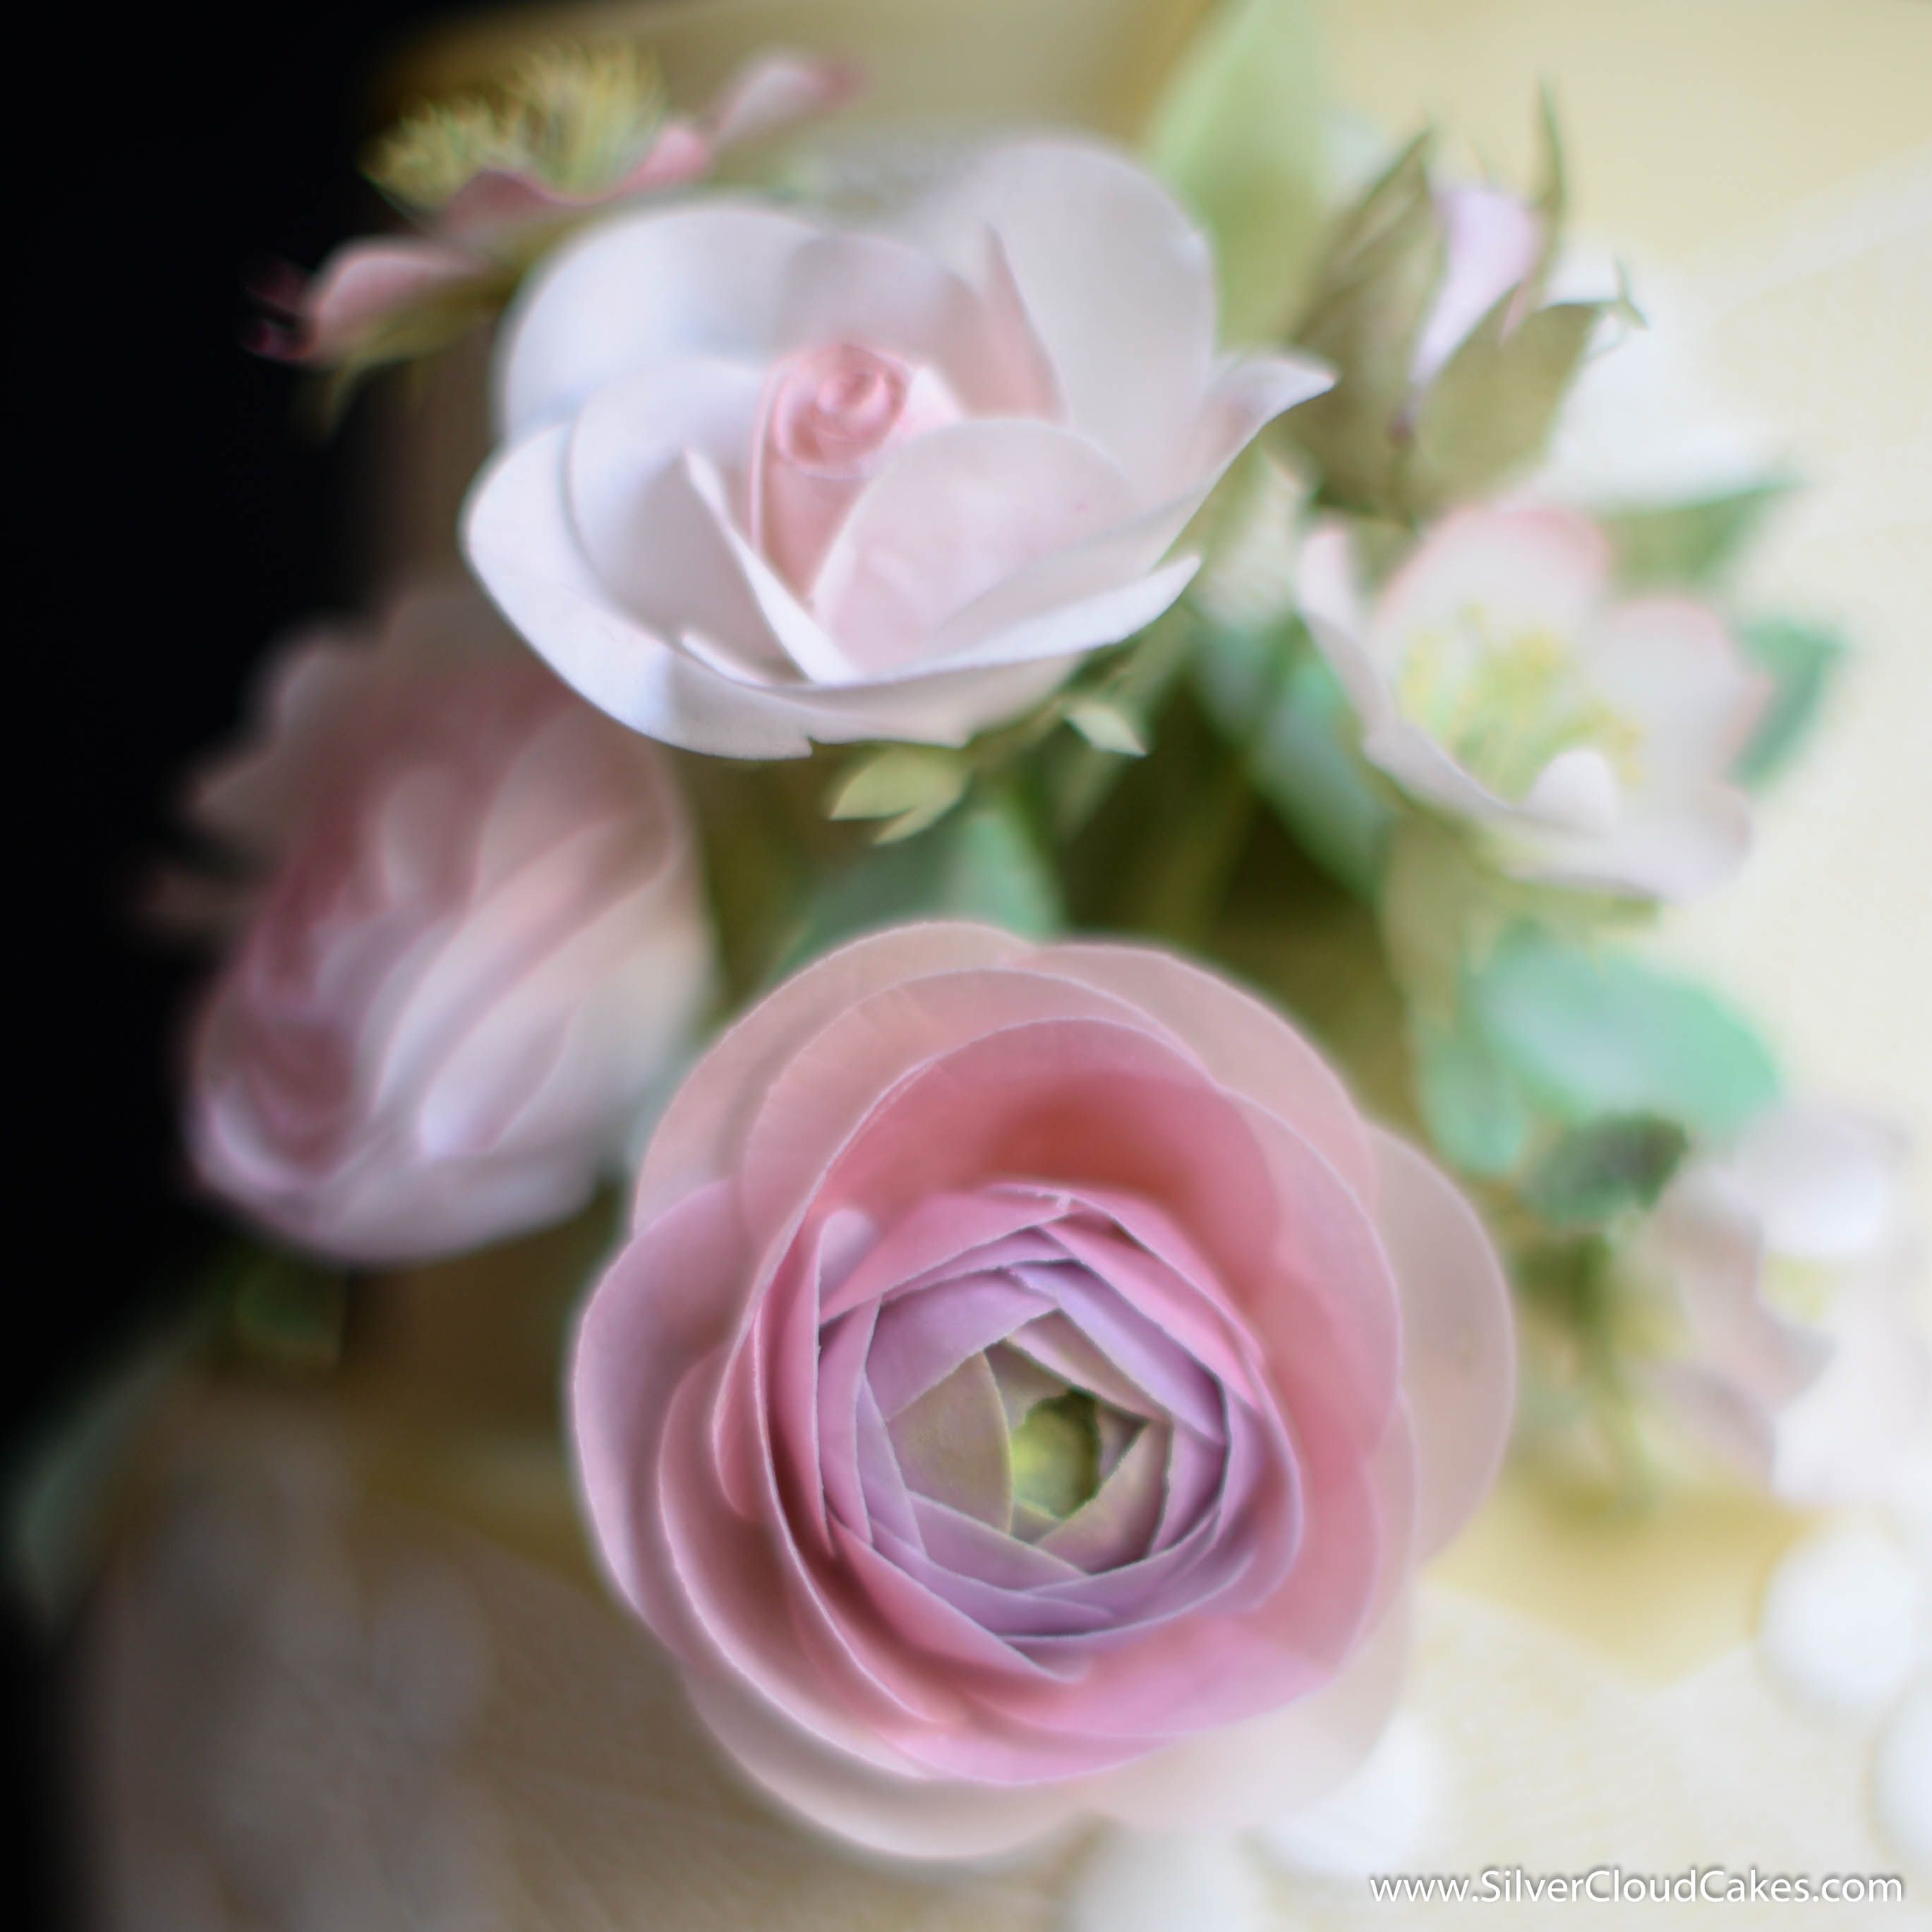 Handcrafted Edible Wafer Paper Flowers For A Wedding Cake Silver